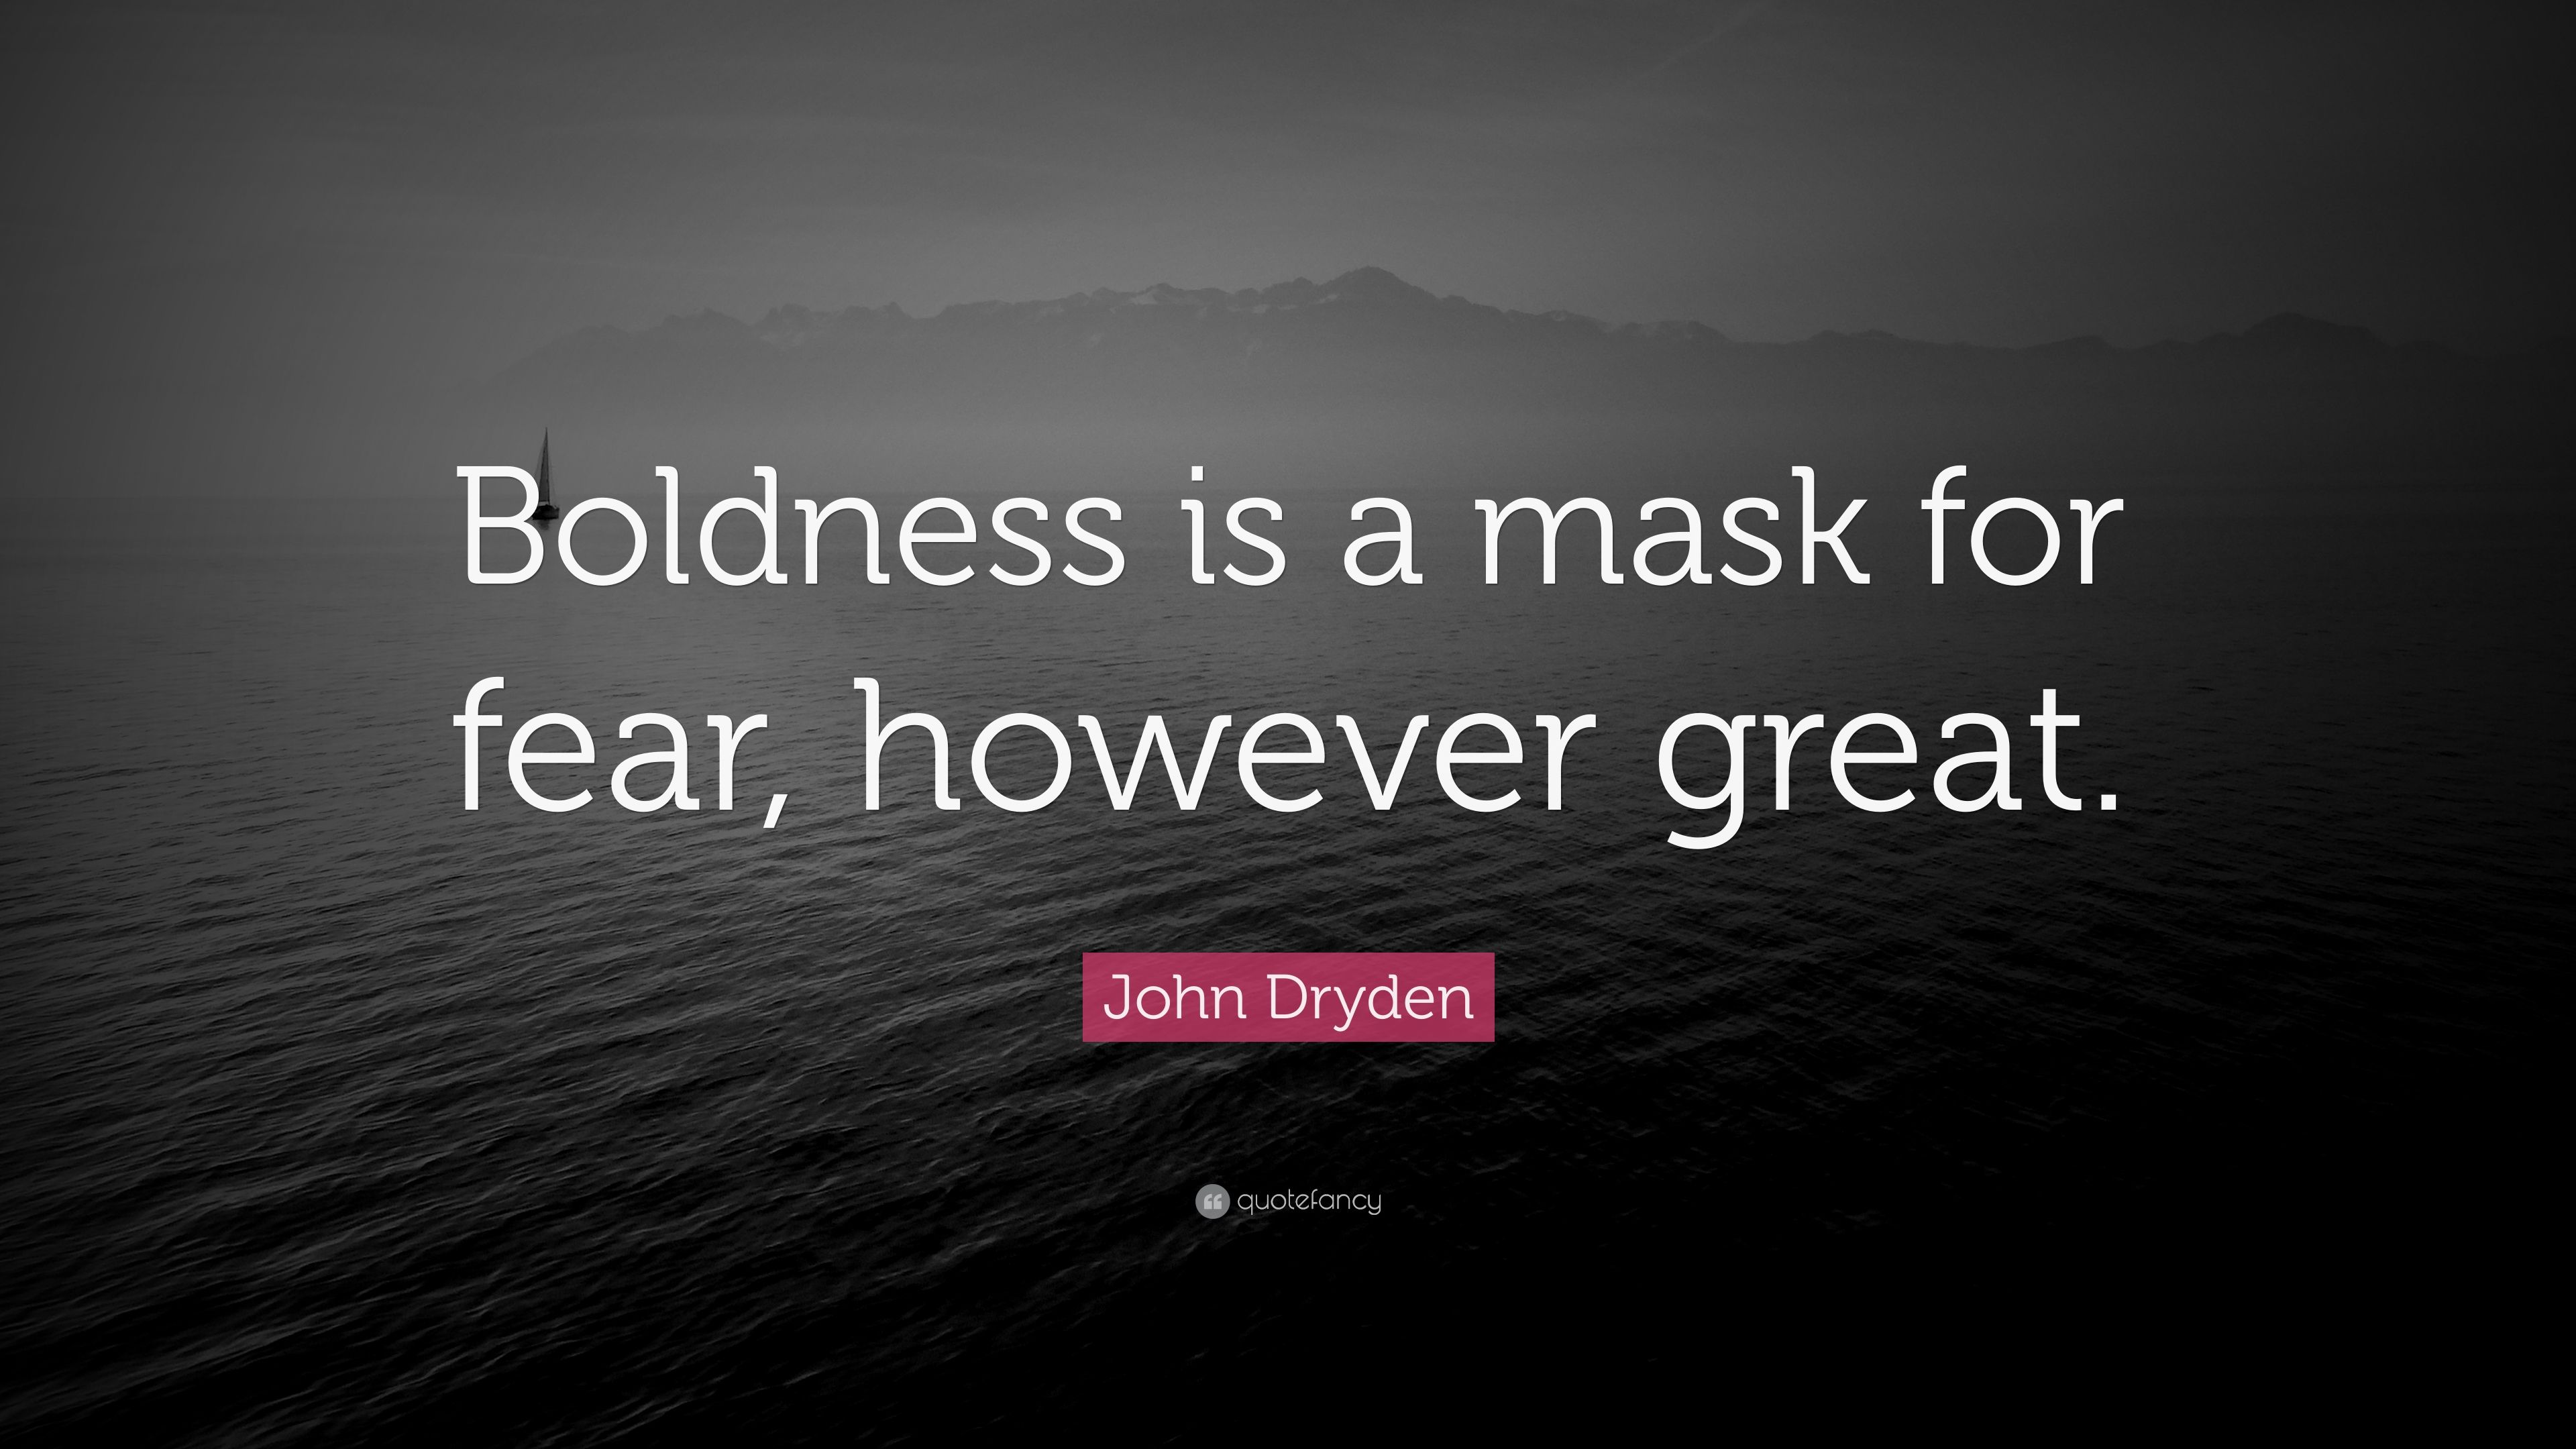 Attirant John Dryden Quote: U201cBoldness Is A Mask For Fear, However Great.u201d